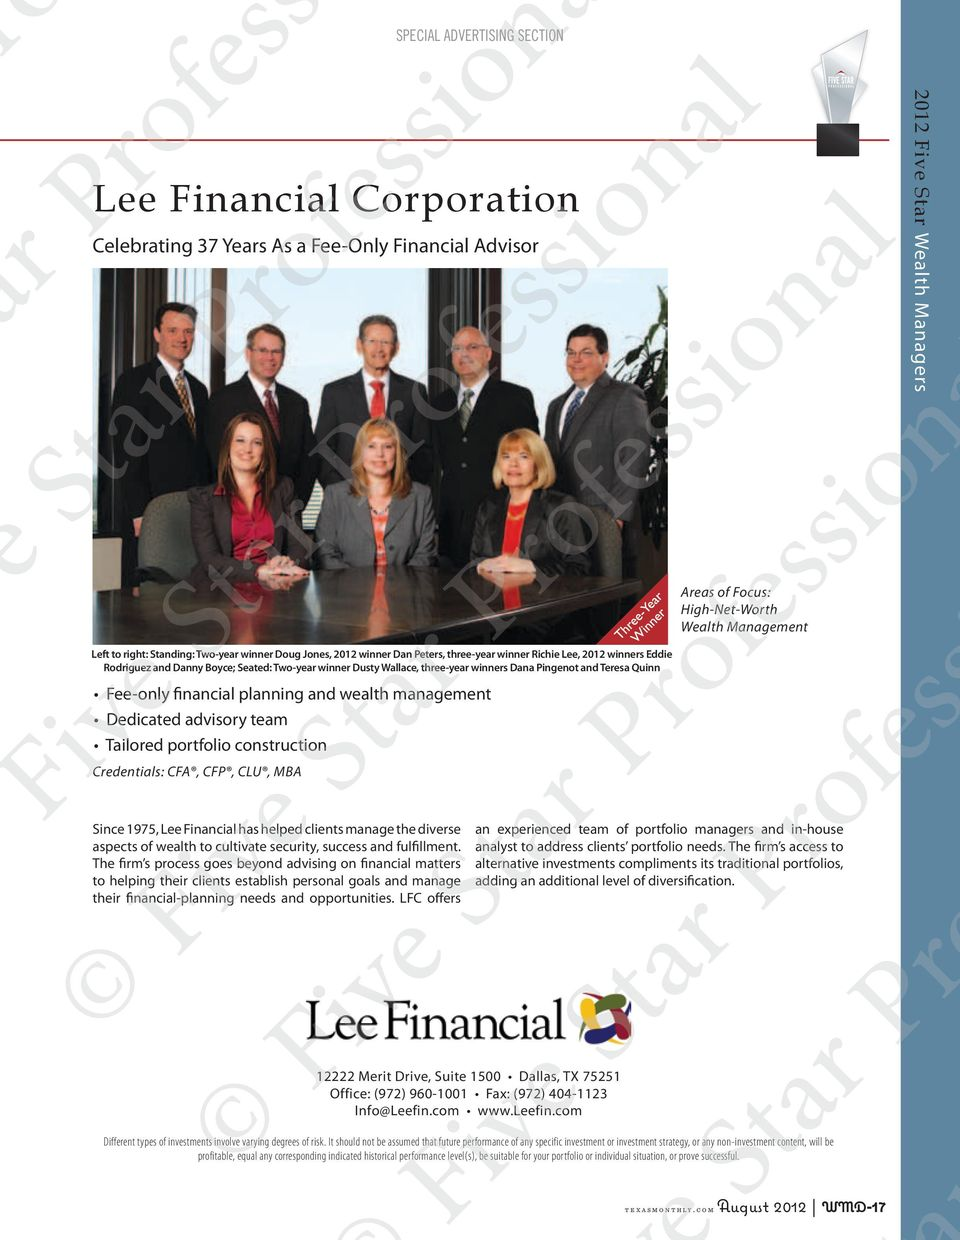 Tailored portfolio construction Since 1975, Lee Financial has helped clients manage the diverse aspects of wealth to cultivate security, success and fulfillment.